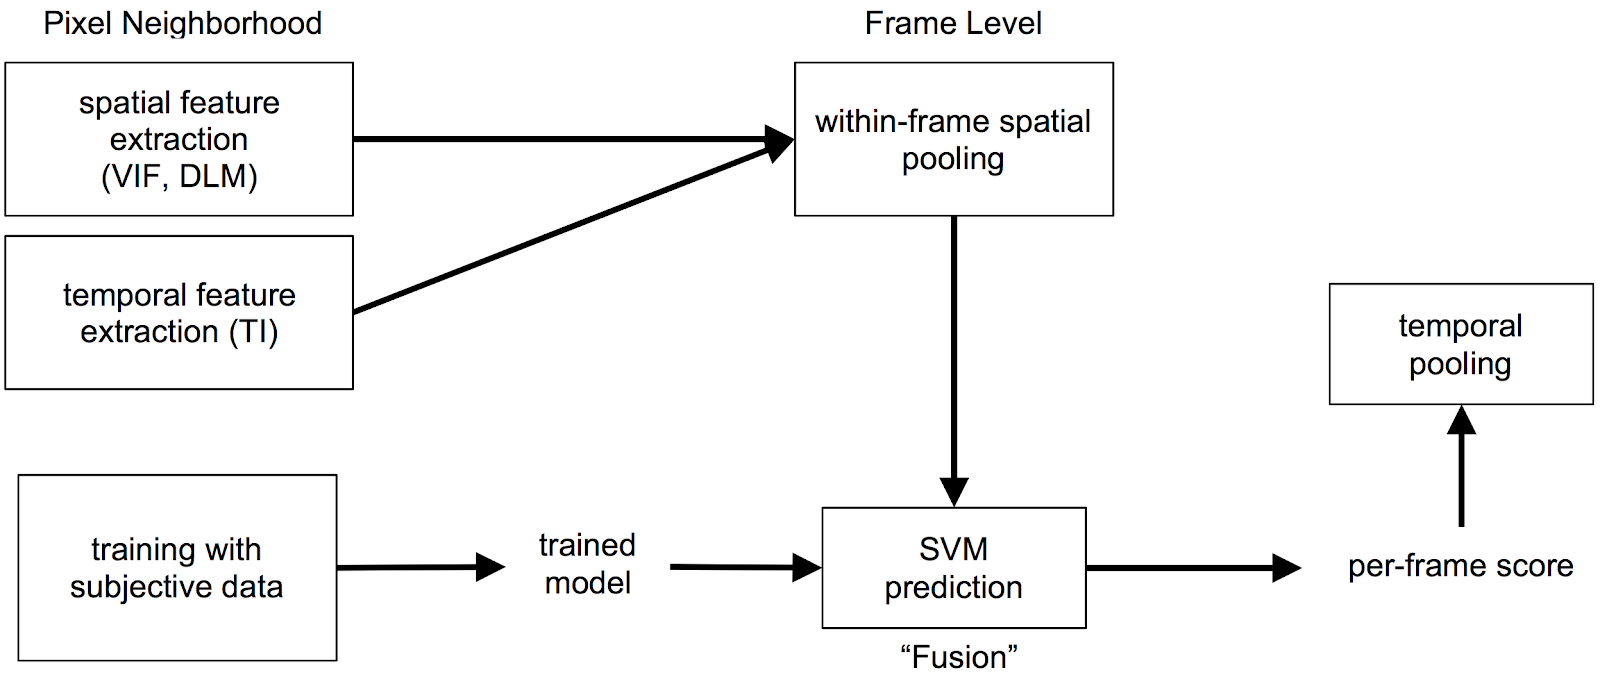 Dynamic Optimizer A Perceptual Video Encoding Optimization Framework H 264 Encoder Block Diagram Explanation Fig 2 How Vmaf Works Pixel Level Data Are Pooled To Create Frame Features Different Spatial And Temporal Fused Using Svm Regression